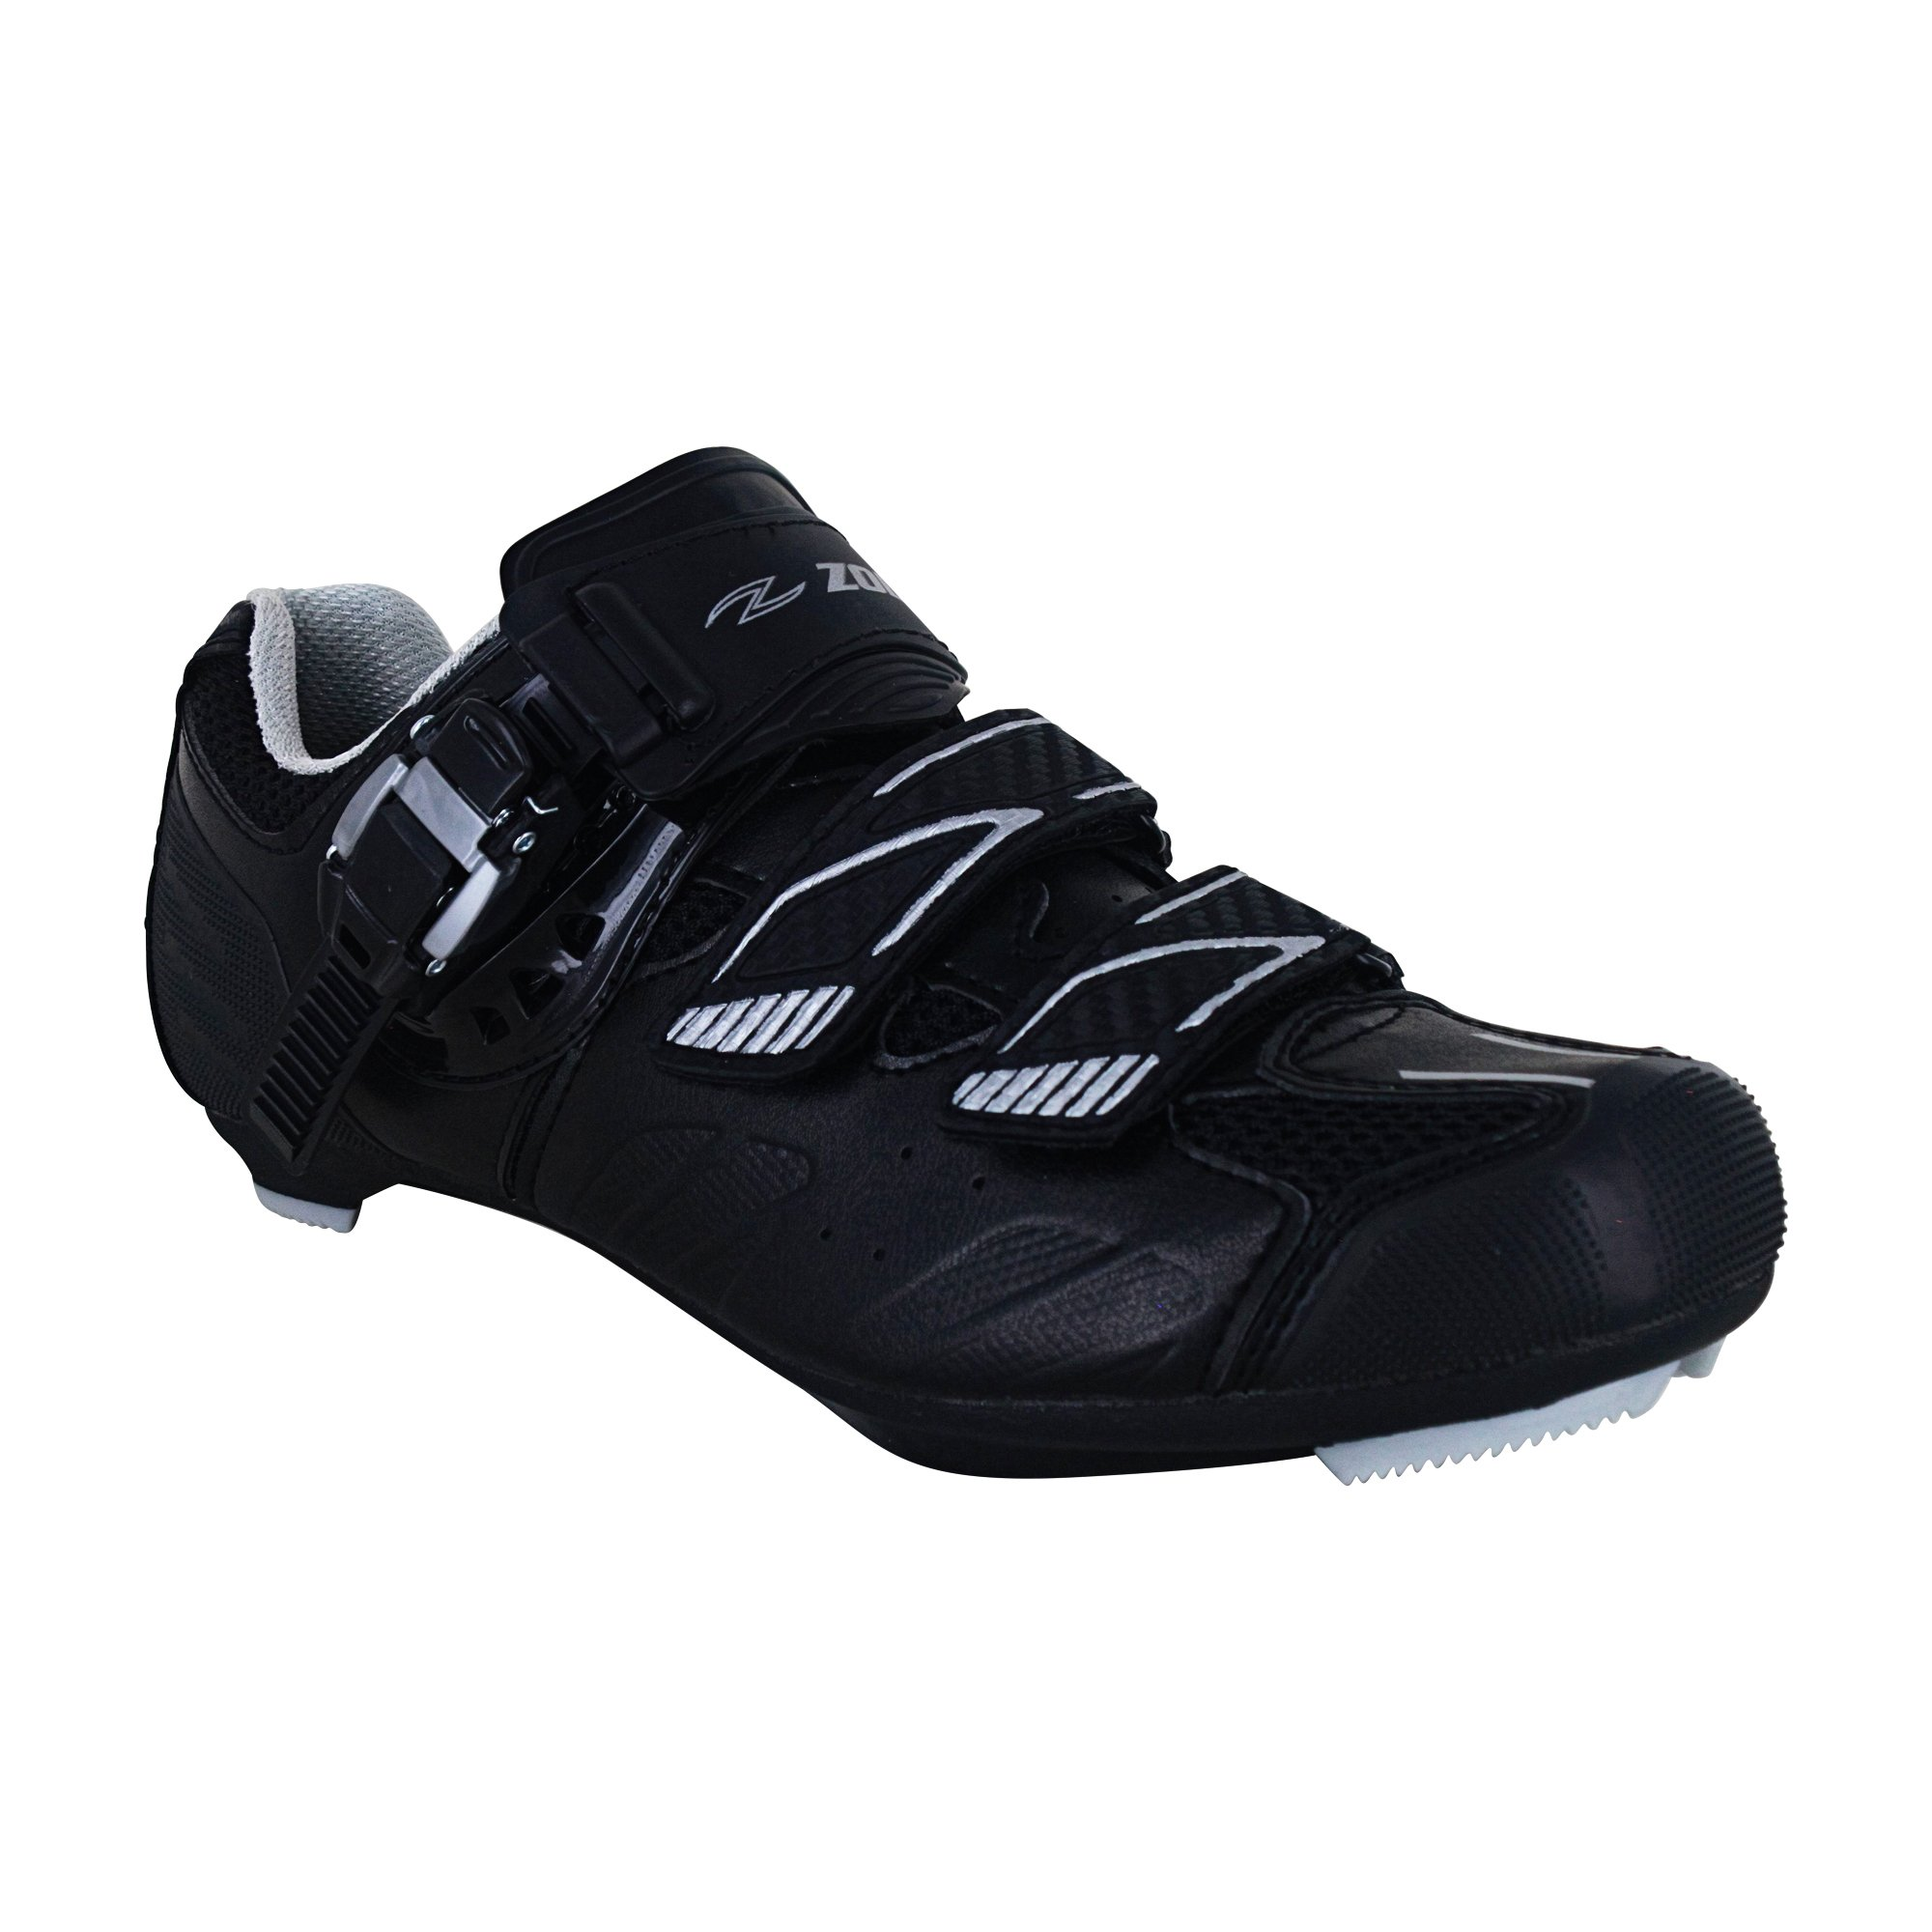 Zol Stage Plus Road Cycling Shoes 40